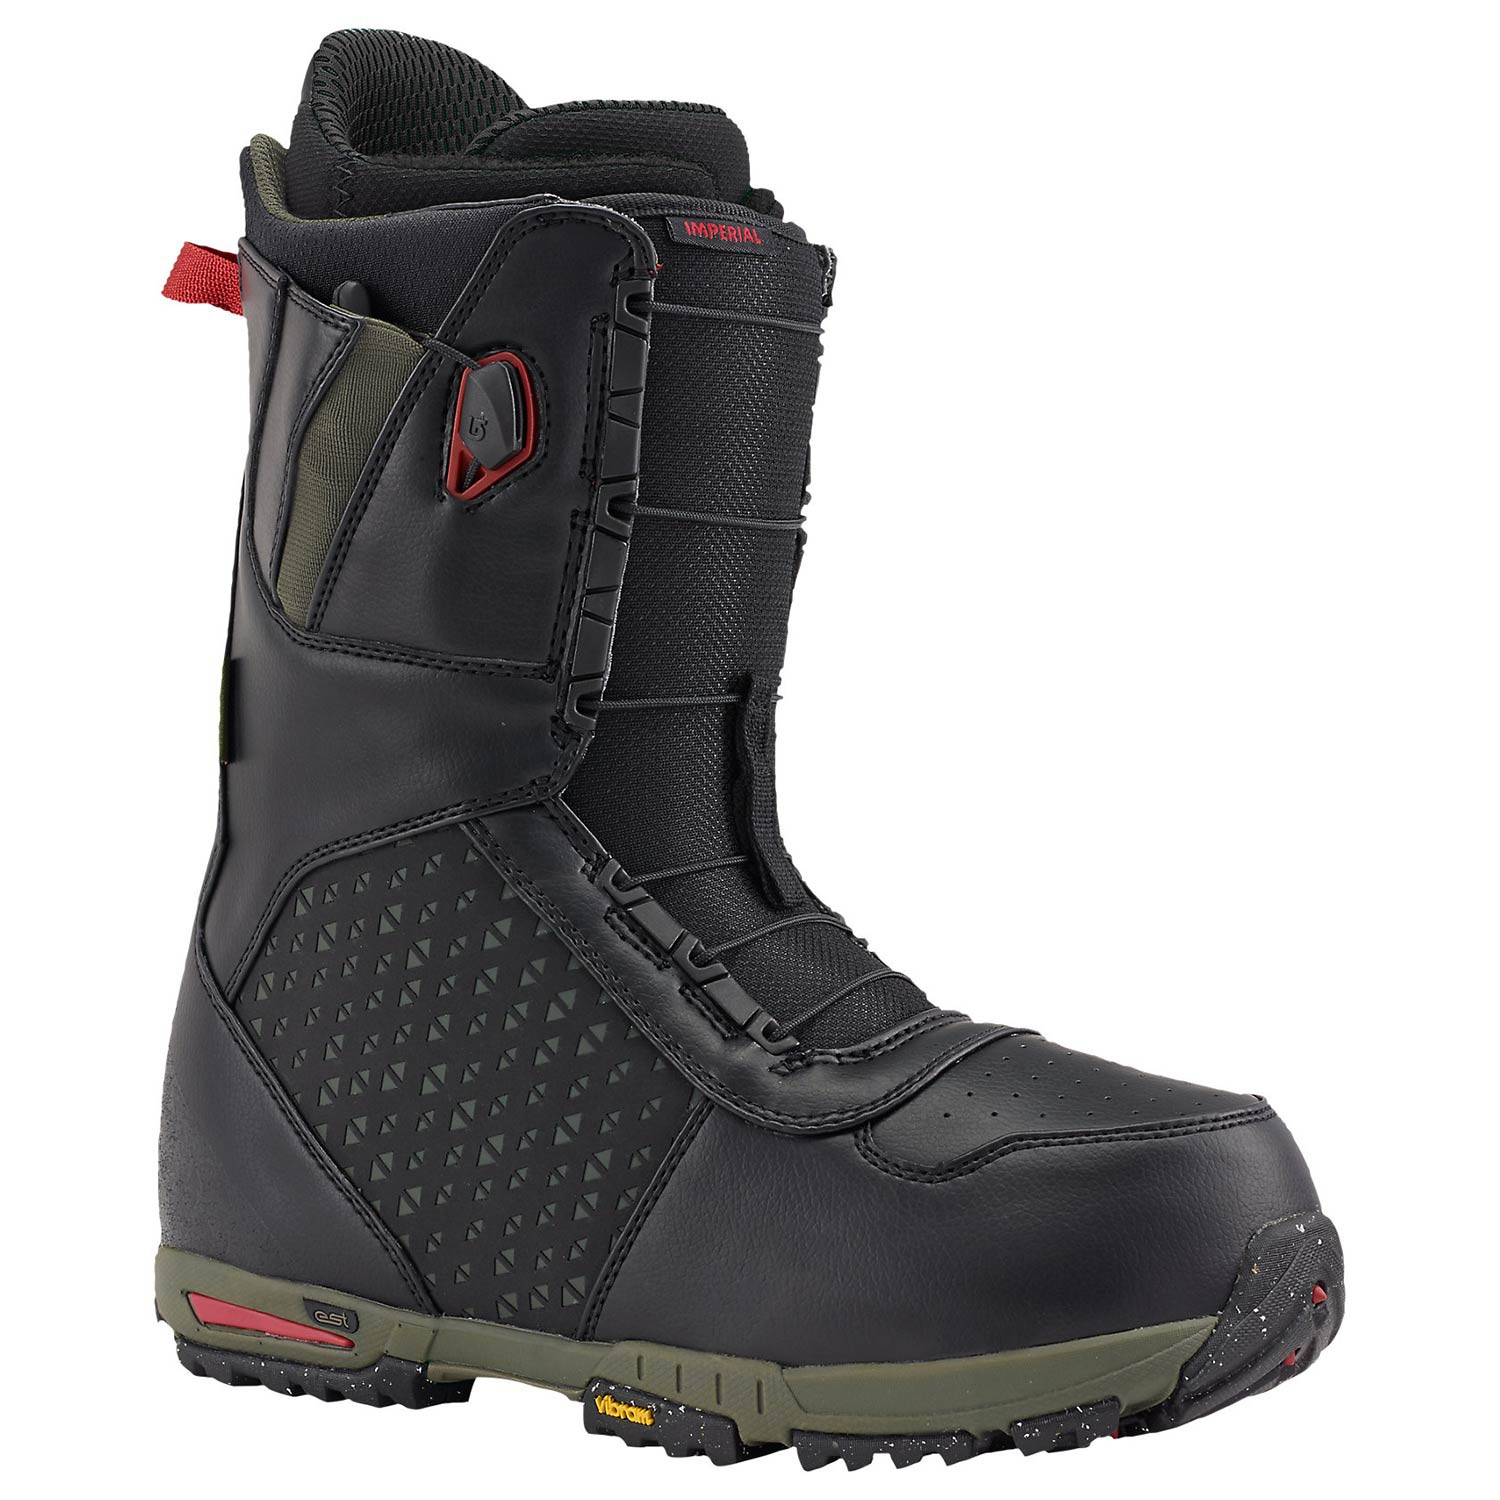 Boty Burton Imperial black/green/red